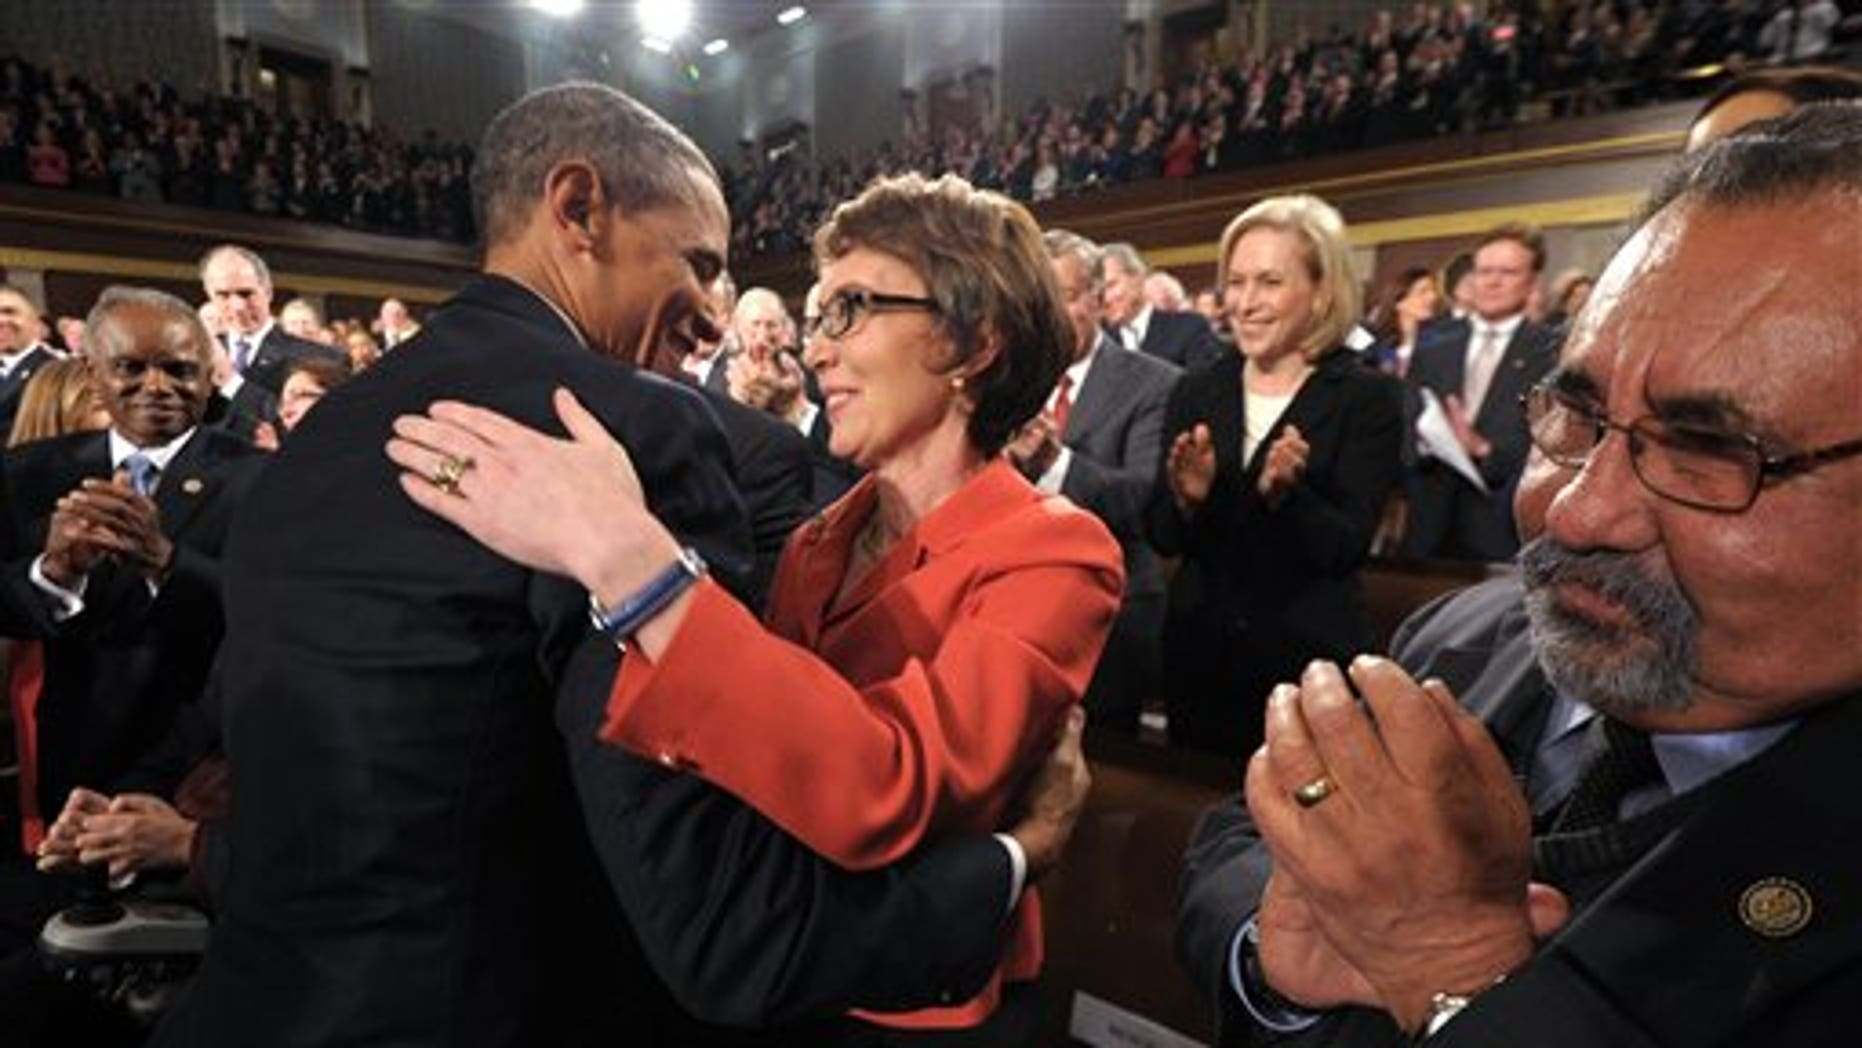 Jan. 24, 2012: President Obama embraces retiring Rep. Gabrielle Giffords, D-Ariz., as members of Congress applaud before his State of the Union address.